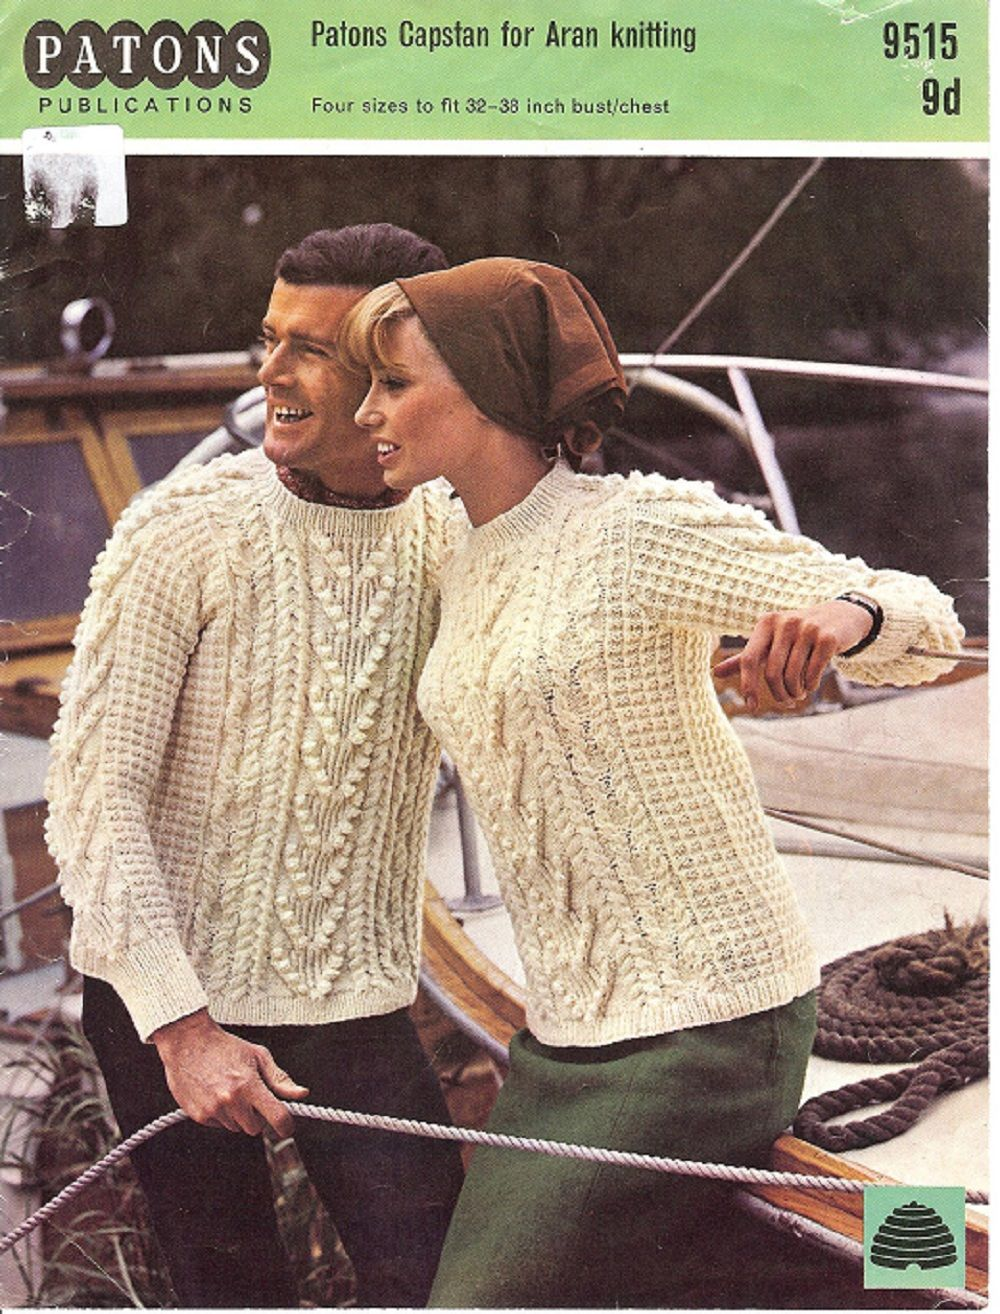 Patons knitting pattern 9515 ladys mans aran sweater knitting patons knitting pattern 9515 ladys mans aran sweater bankloansurffo Gallery